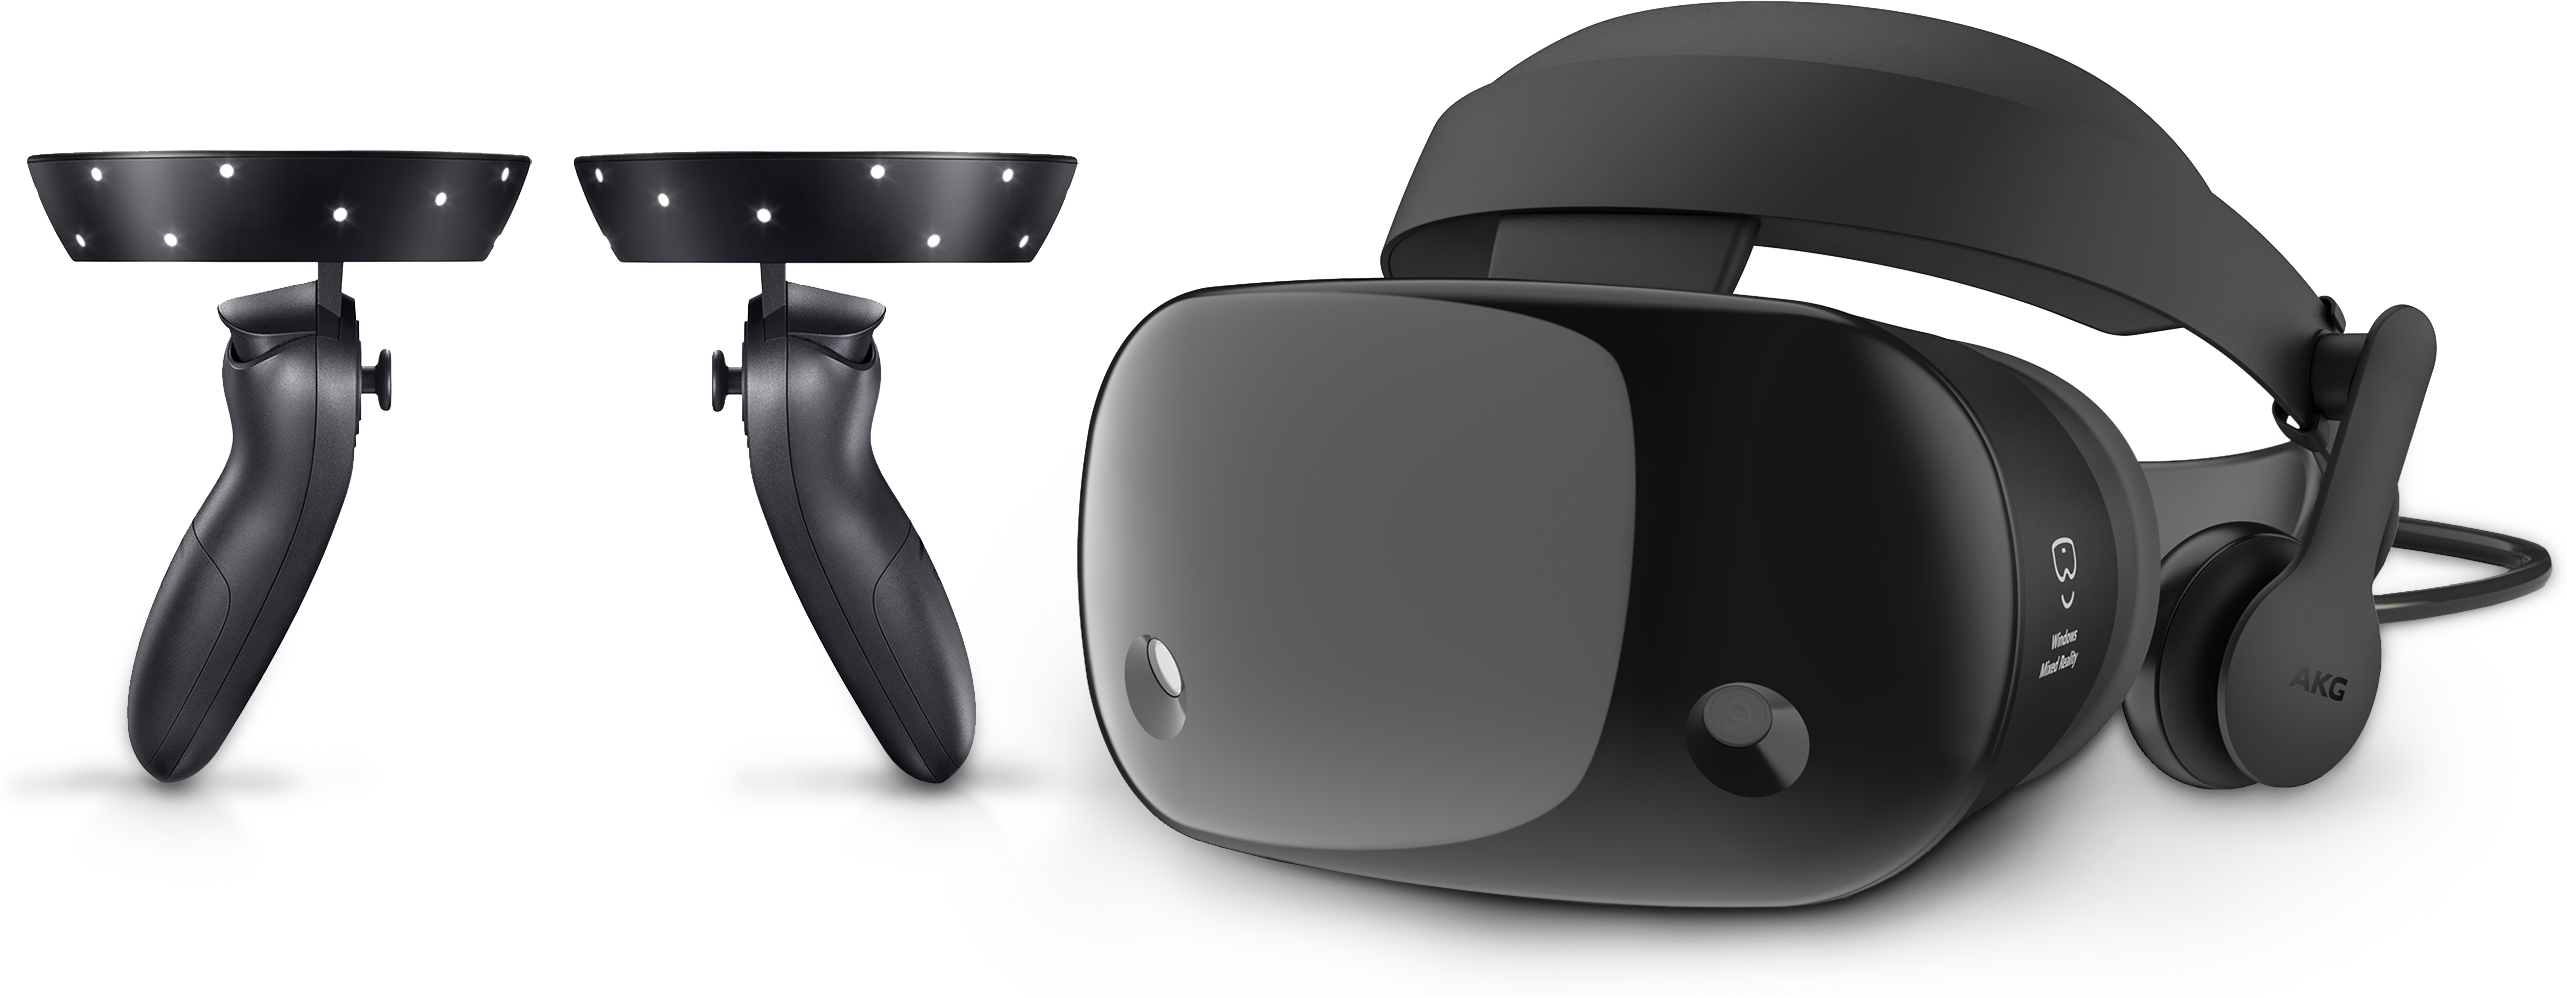 Samsung Hmd Odyssey On Sale At Microsoft Store In Us Amp Canada Us 399 Cdn 549 Free Shipping Vr Headset Samsung Headset